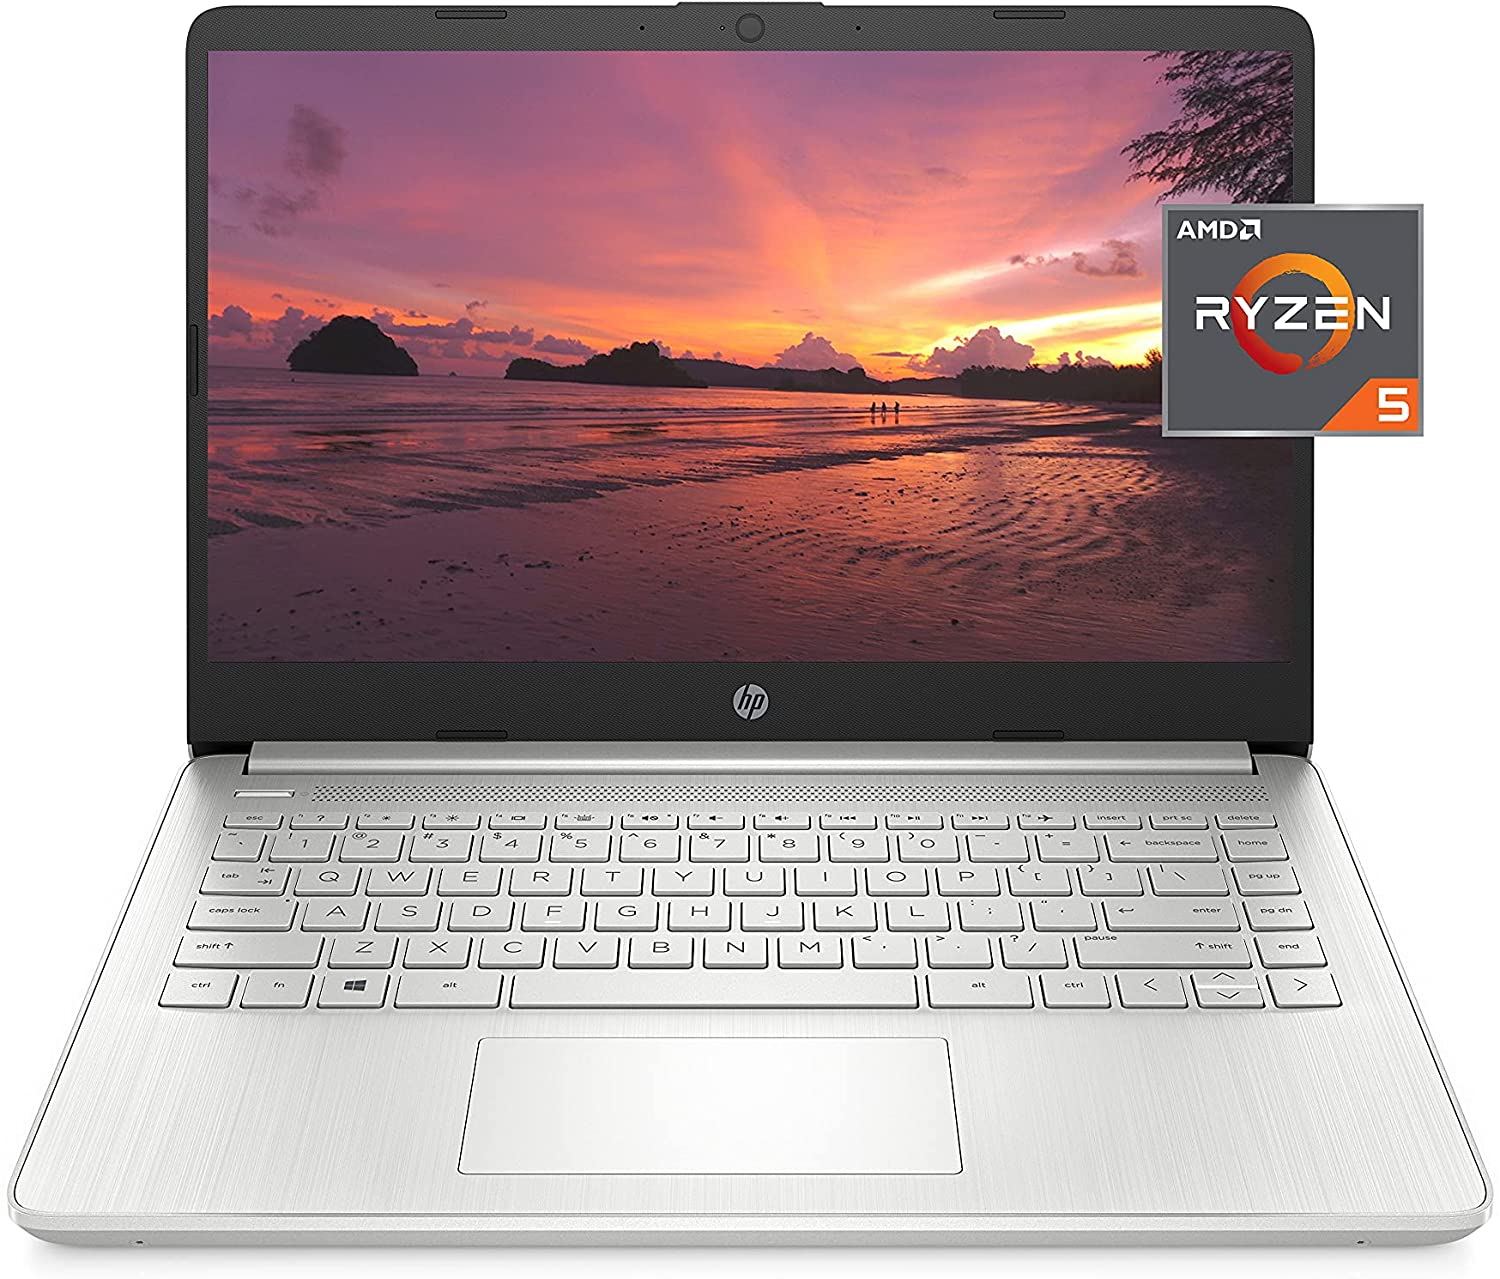 storage/backend/assets/images/product/16278917994Z7s-HP-14-Ryzen-5.jpg